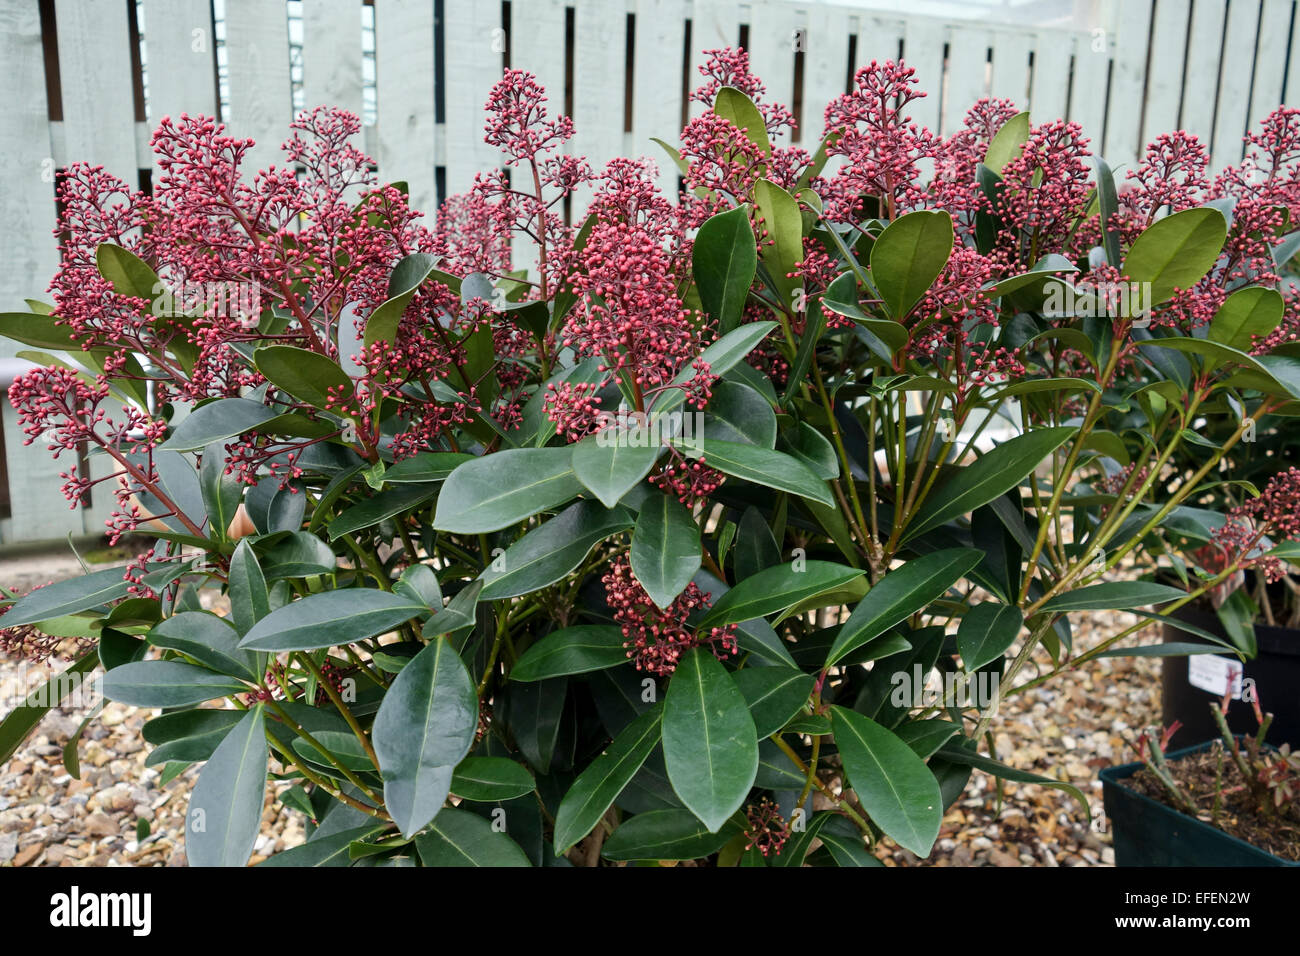 Skimmia japonica 'Rubella' evergreen shrub close up - Stock Image